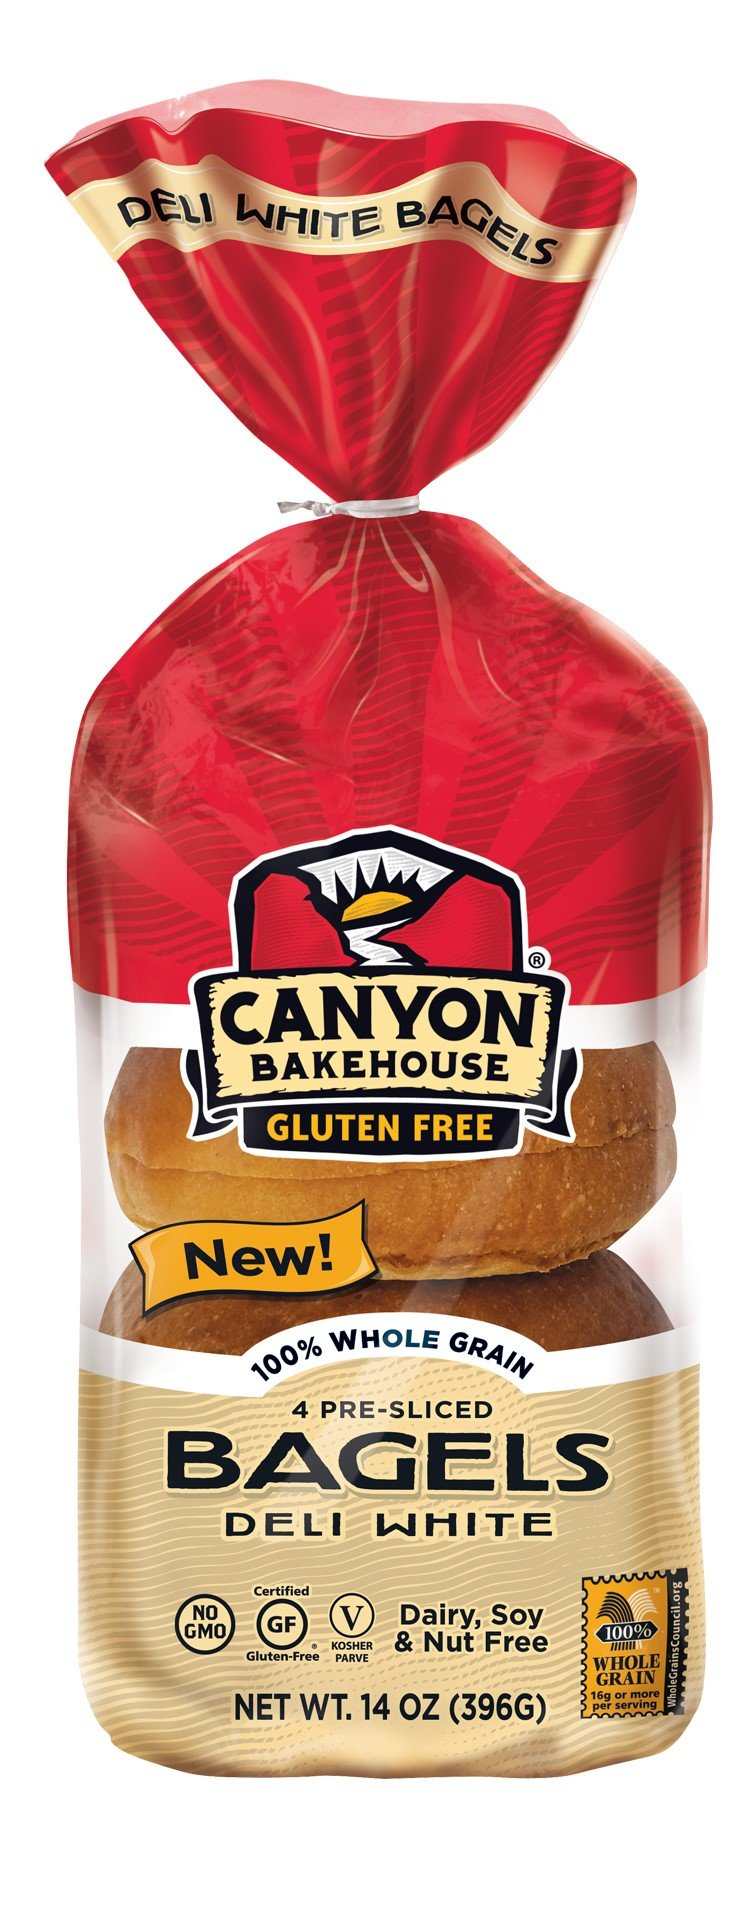 Canyon Bakehouse Gluten-Free Presliced Deli White Bagels